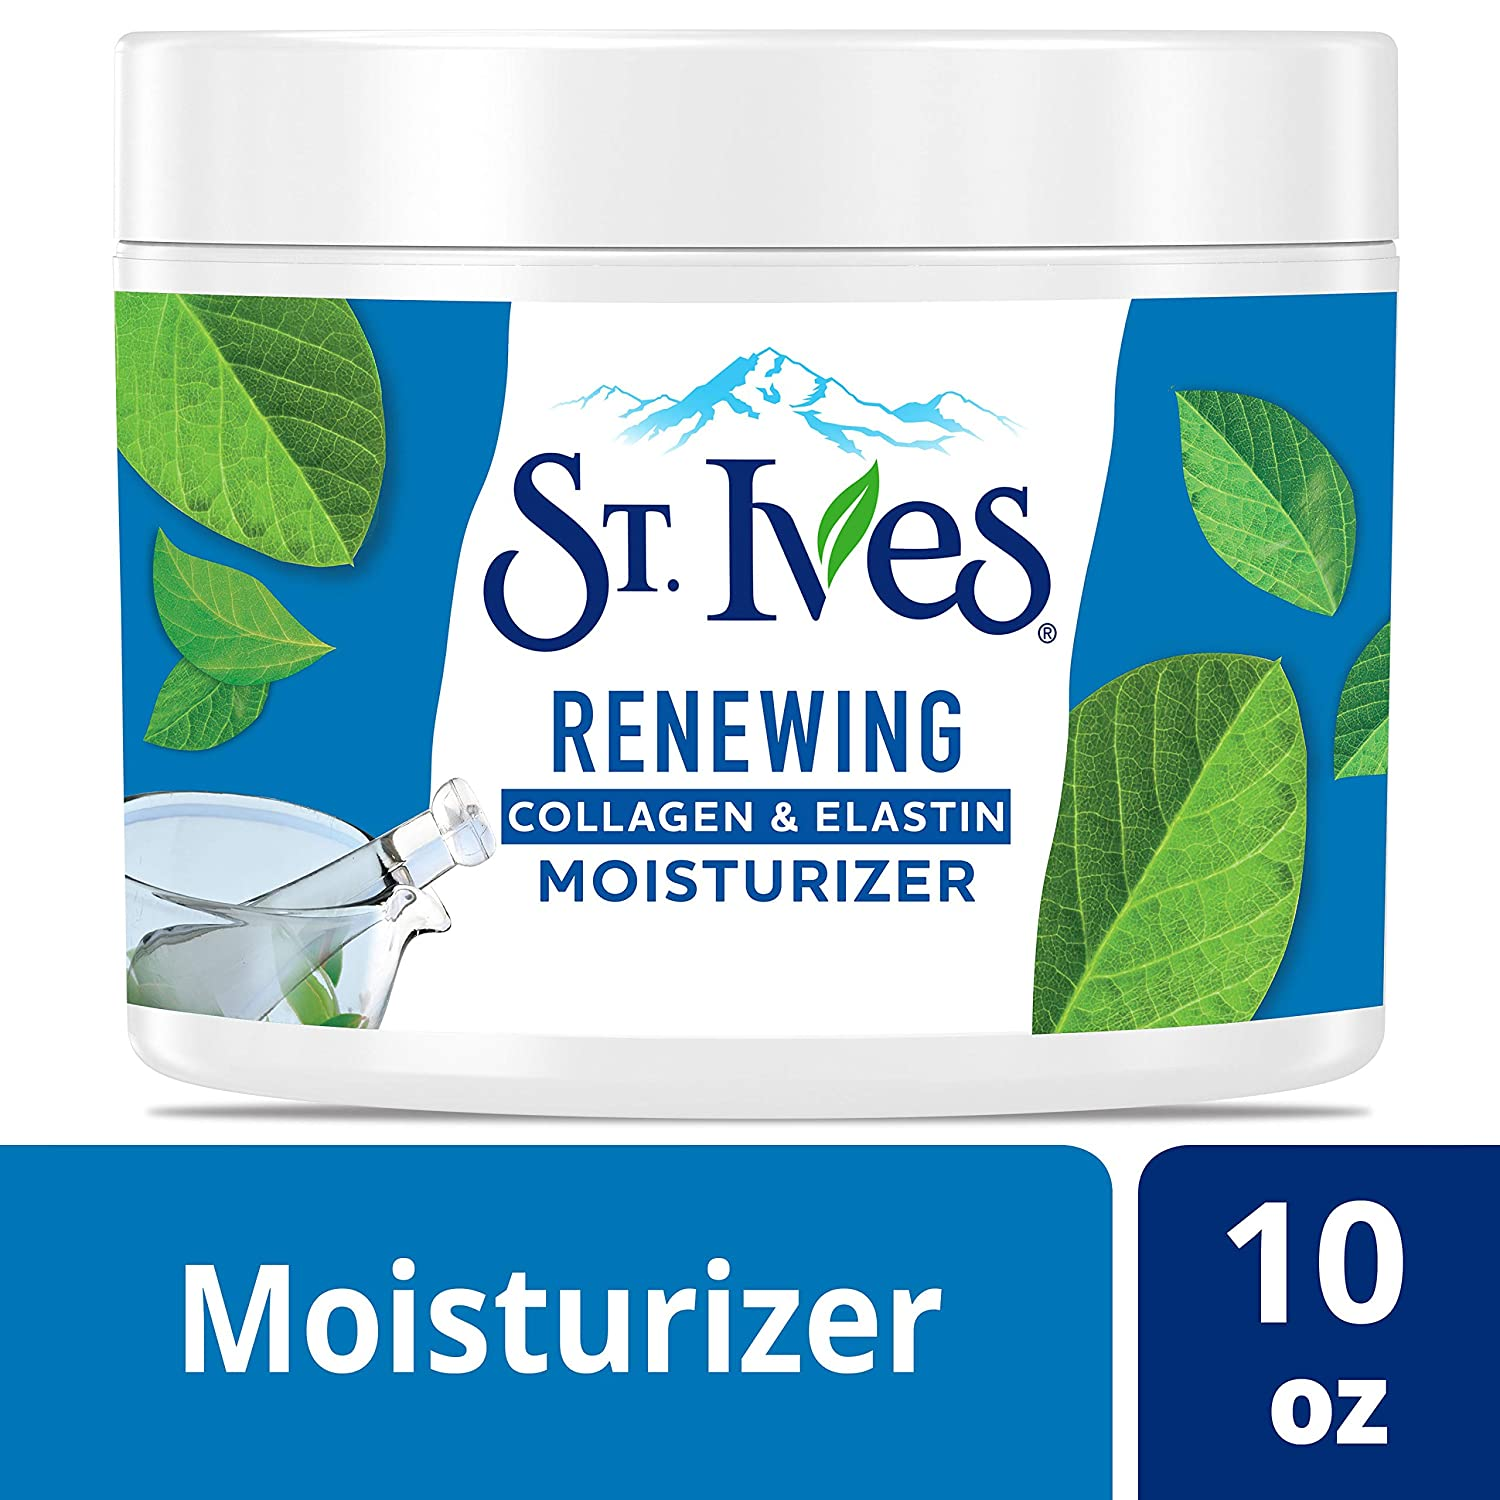 St. Ives Facial Moisturizer for Dry Skin, Collagen Elastin